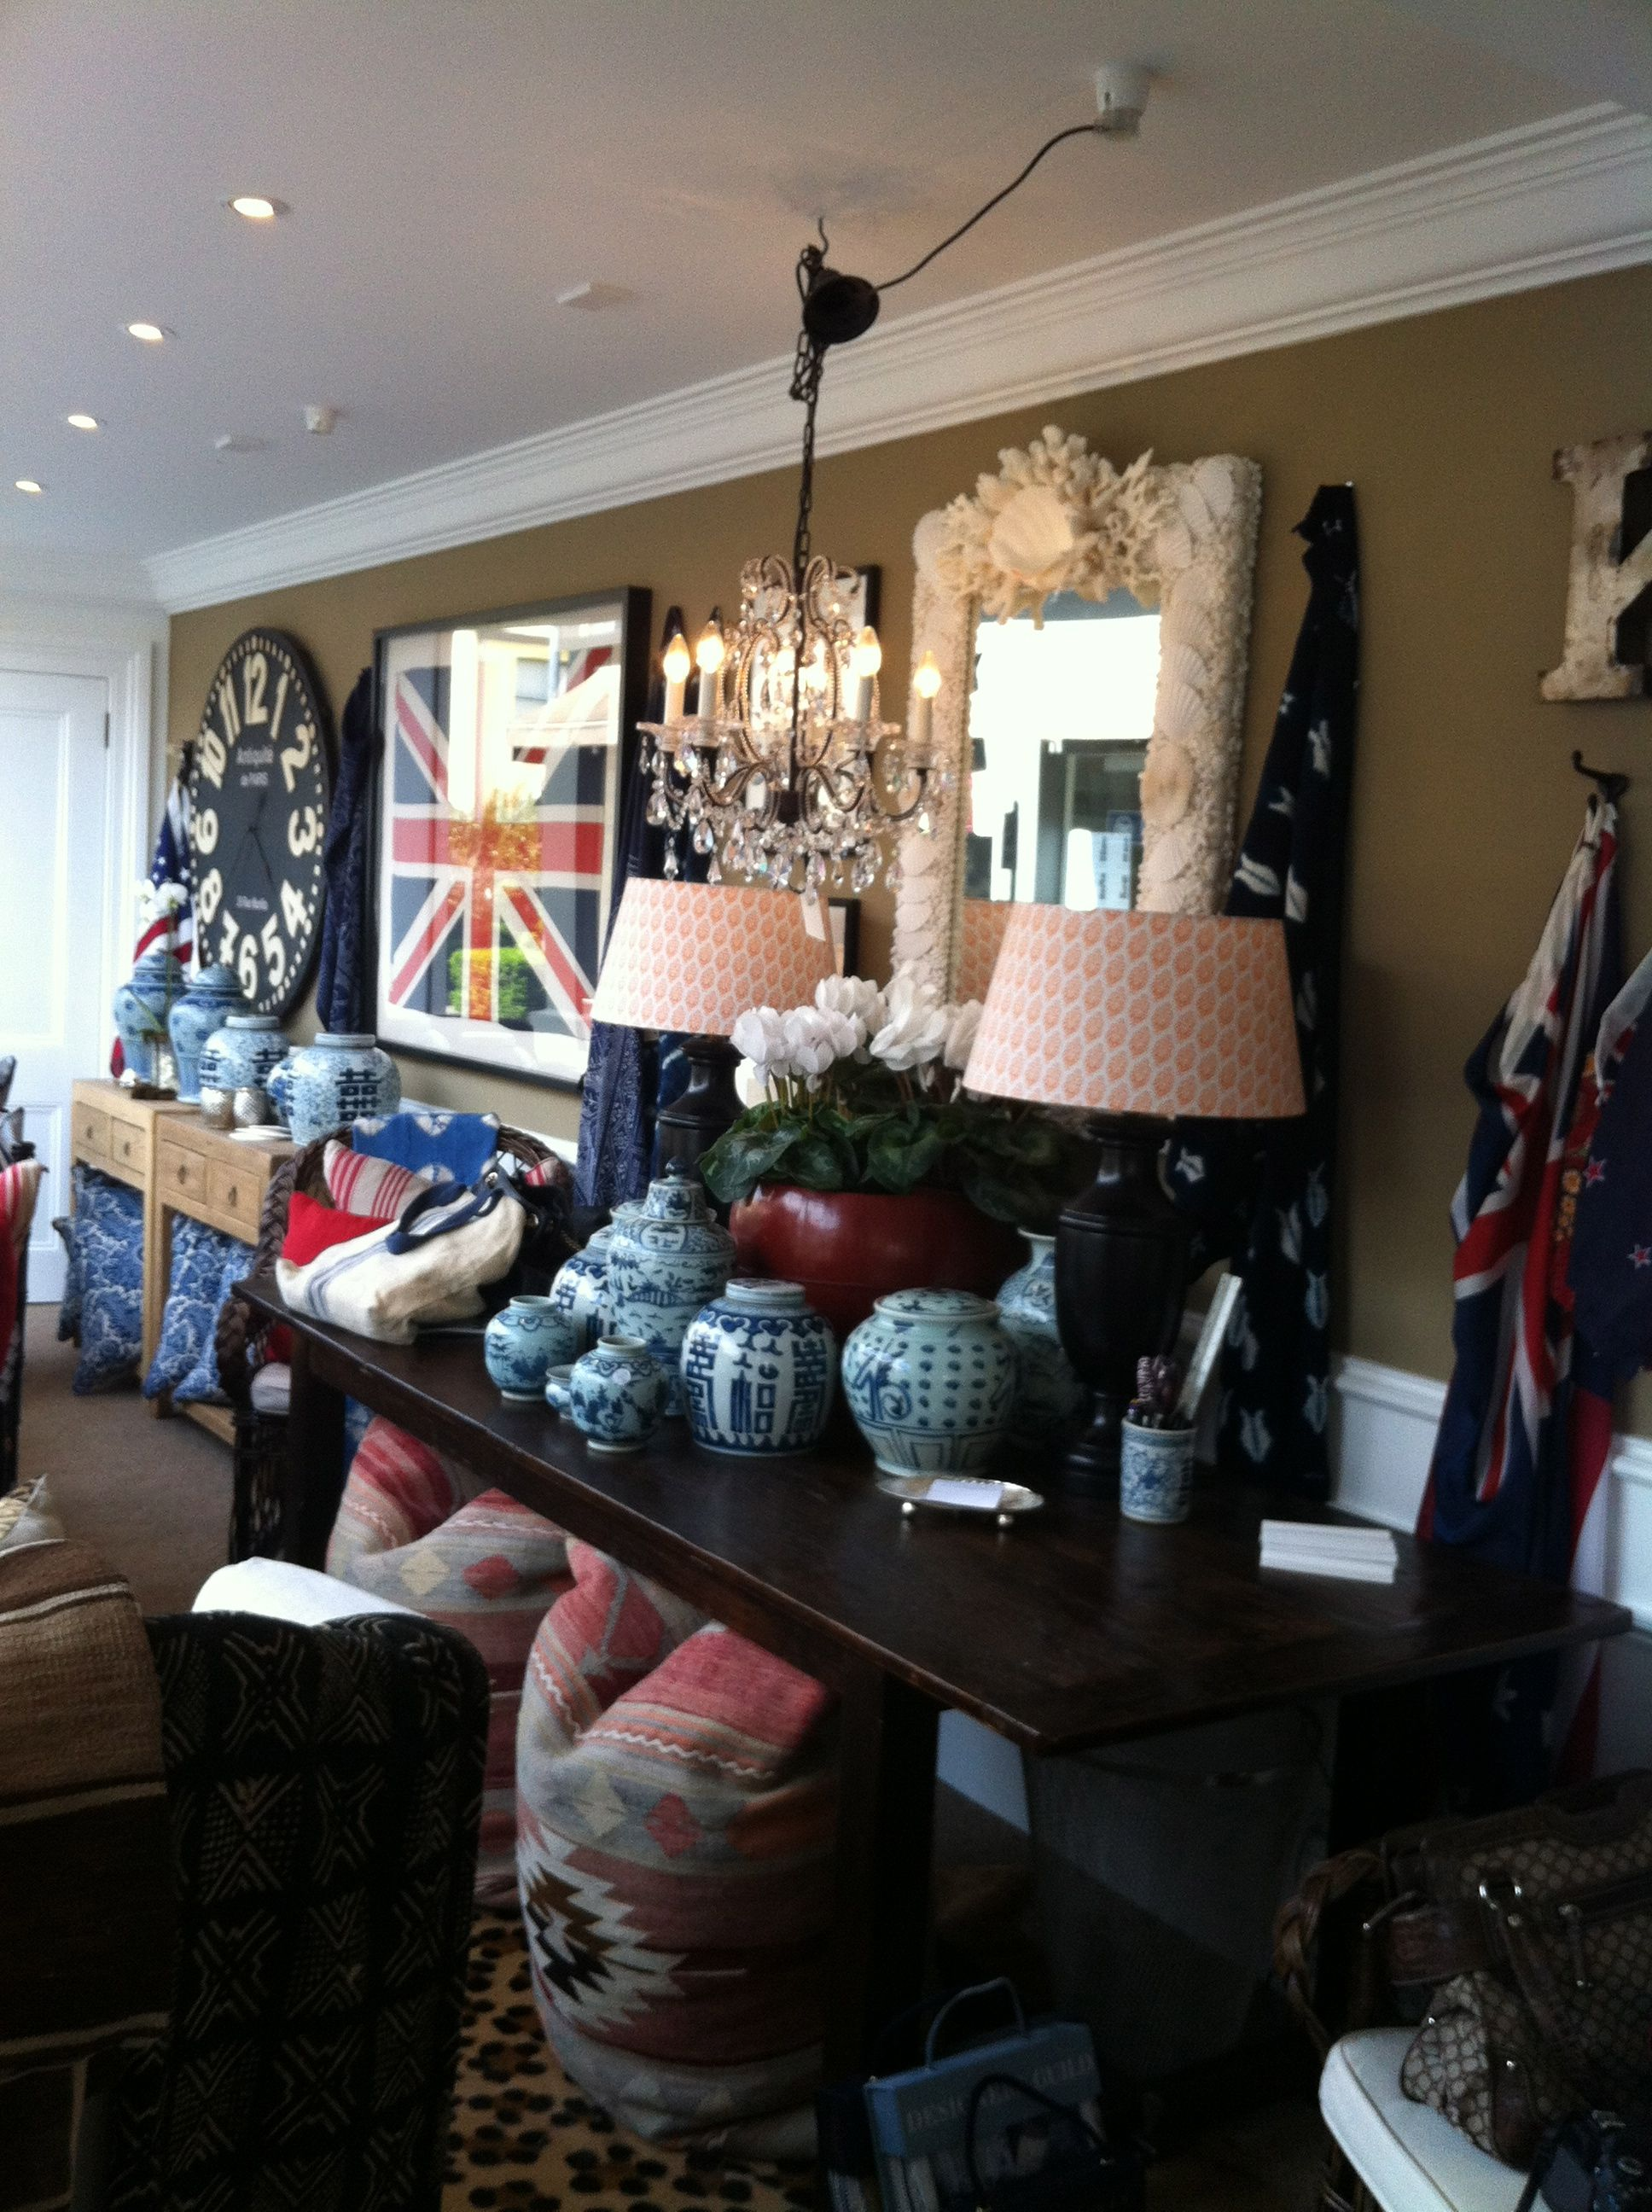 Union Jack Flags, Lots Of Blue & White Ginger Jars,